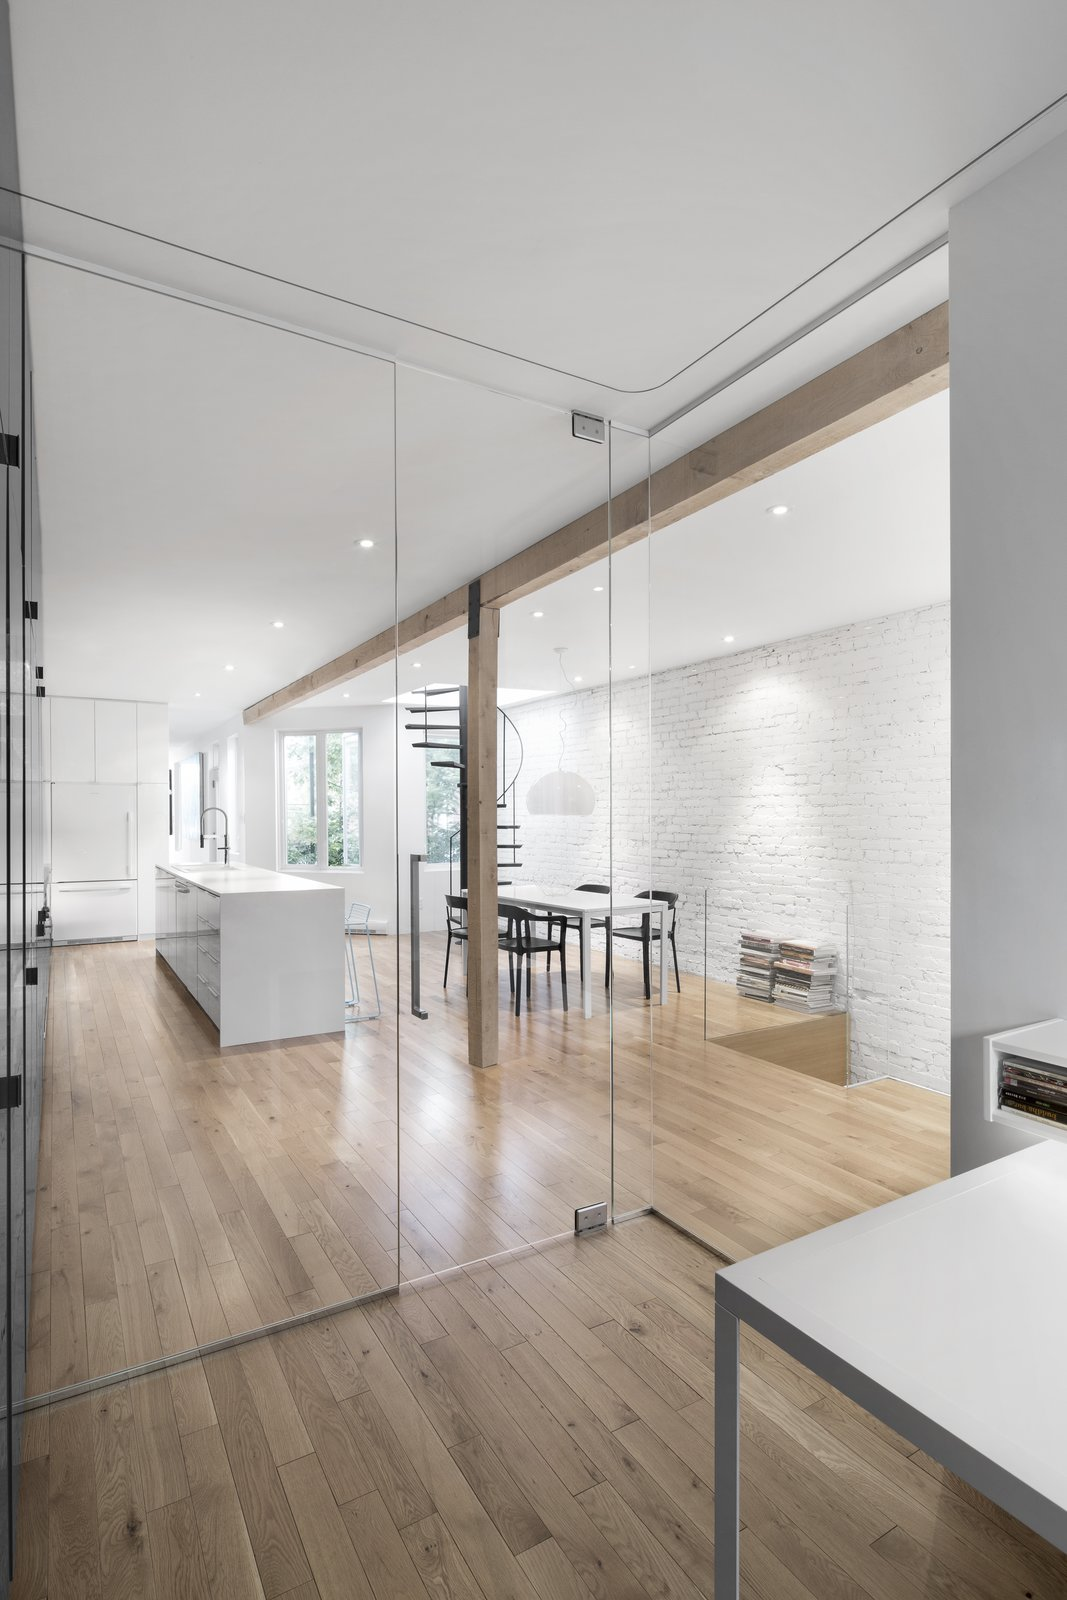 Glass walls allow light to filter through all spaces in the floor plan.  Continuous wood flooring blends from room to room, creating a coherent space.